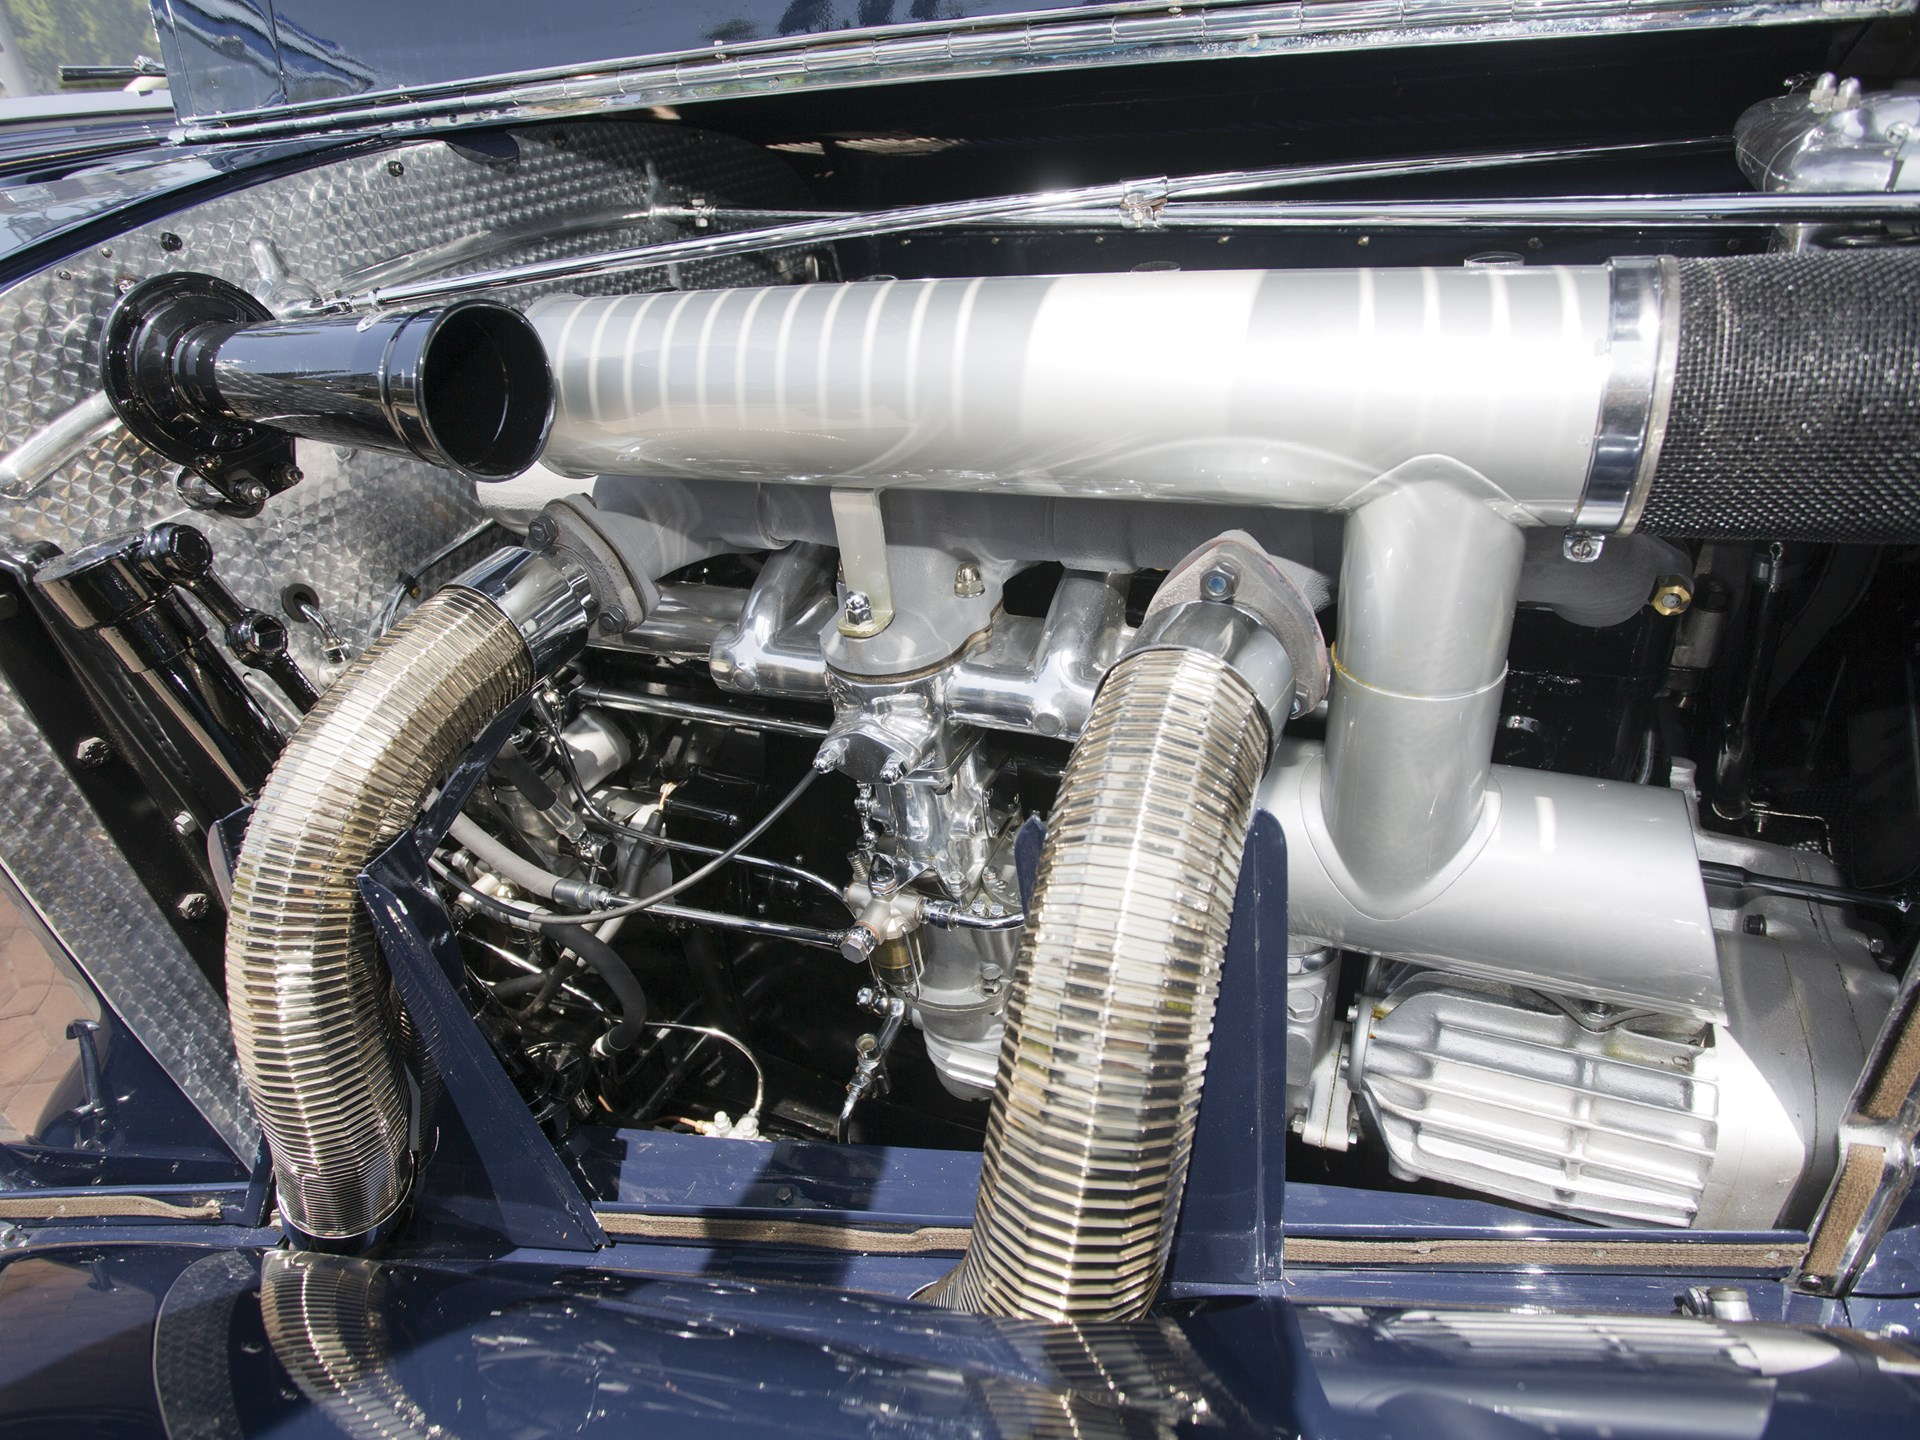 1939 Mercedes-Benz 540k supercharger